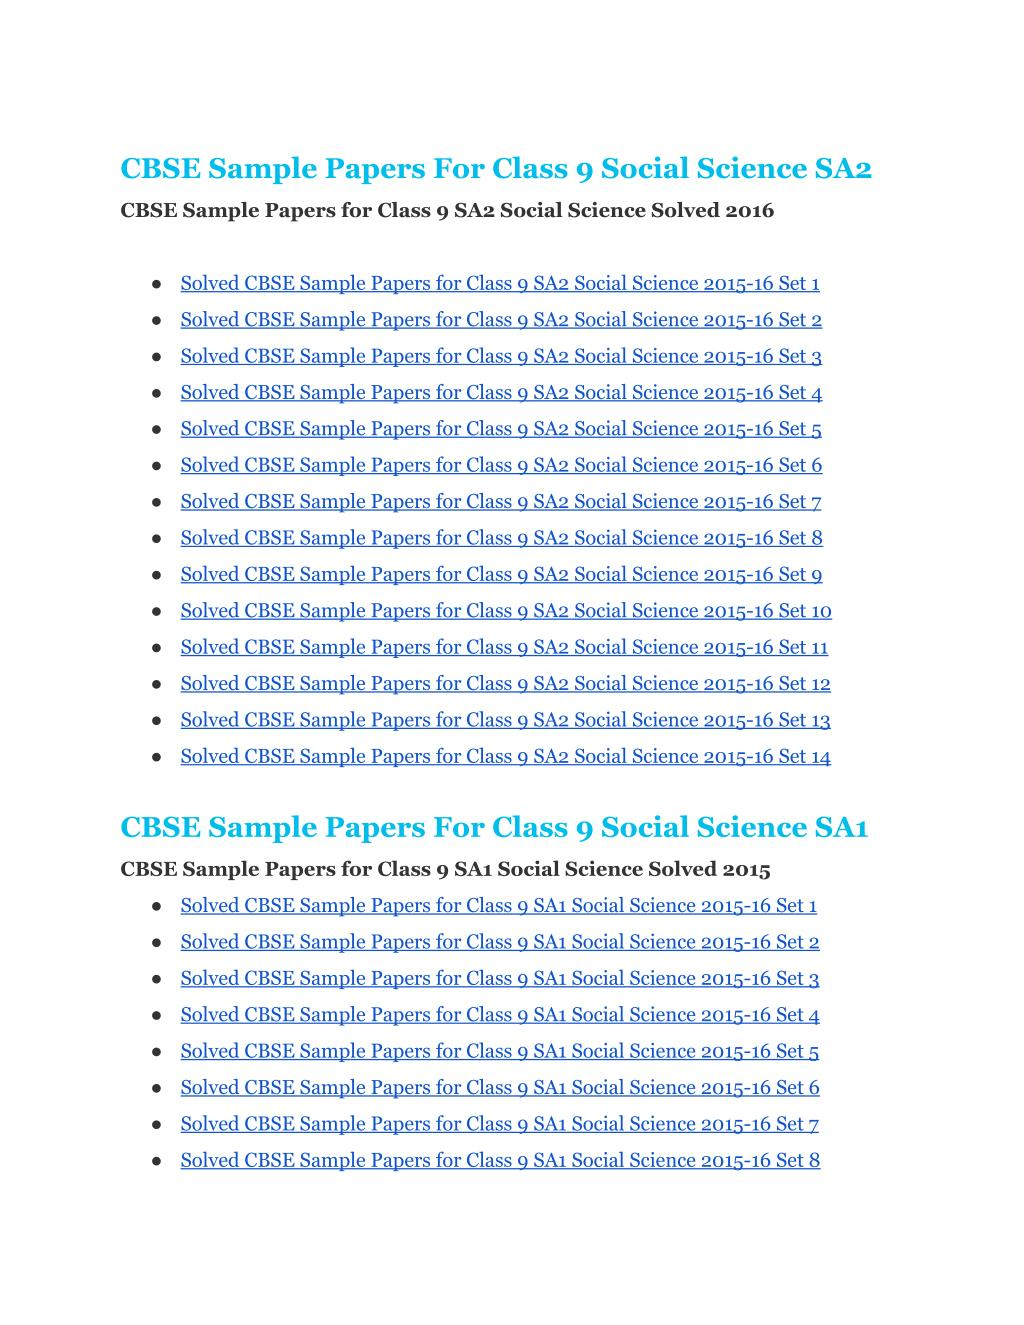 PPT - CBSE-Sample-Papers-For-Class9-Social-Science PowerPoint